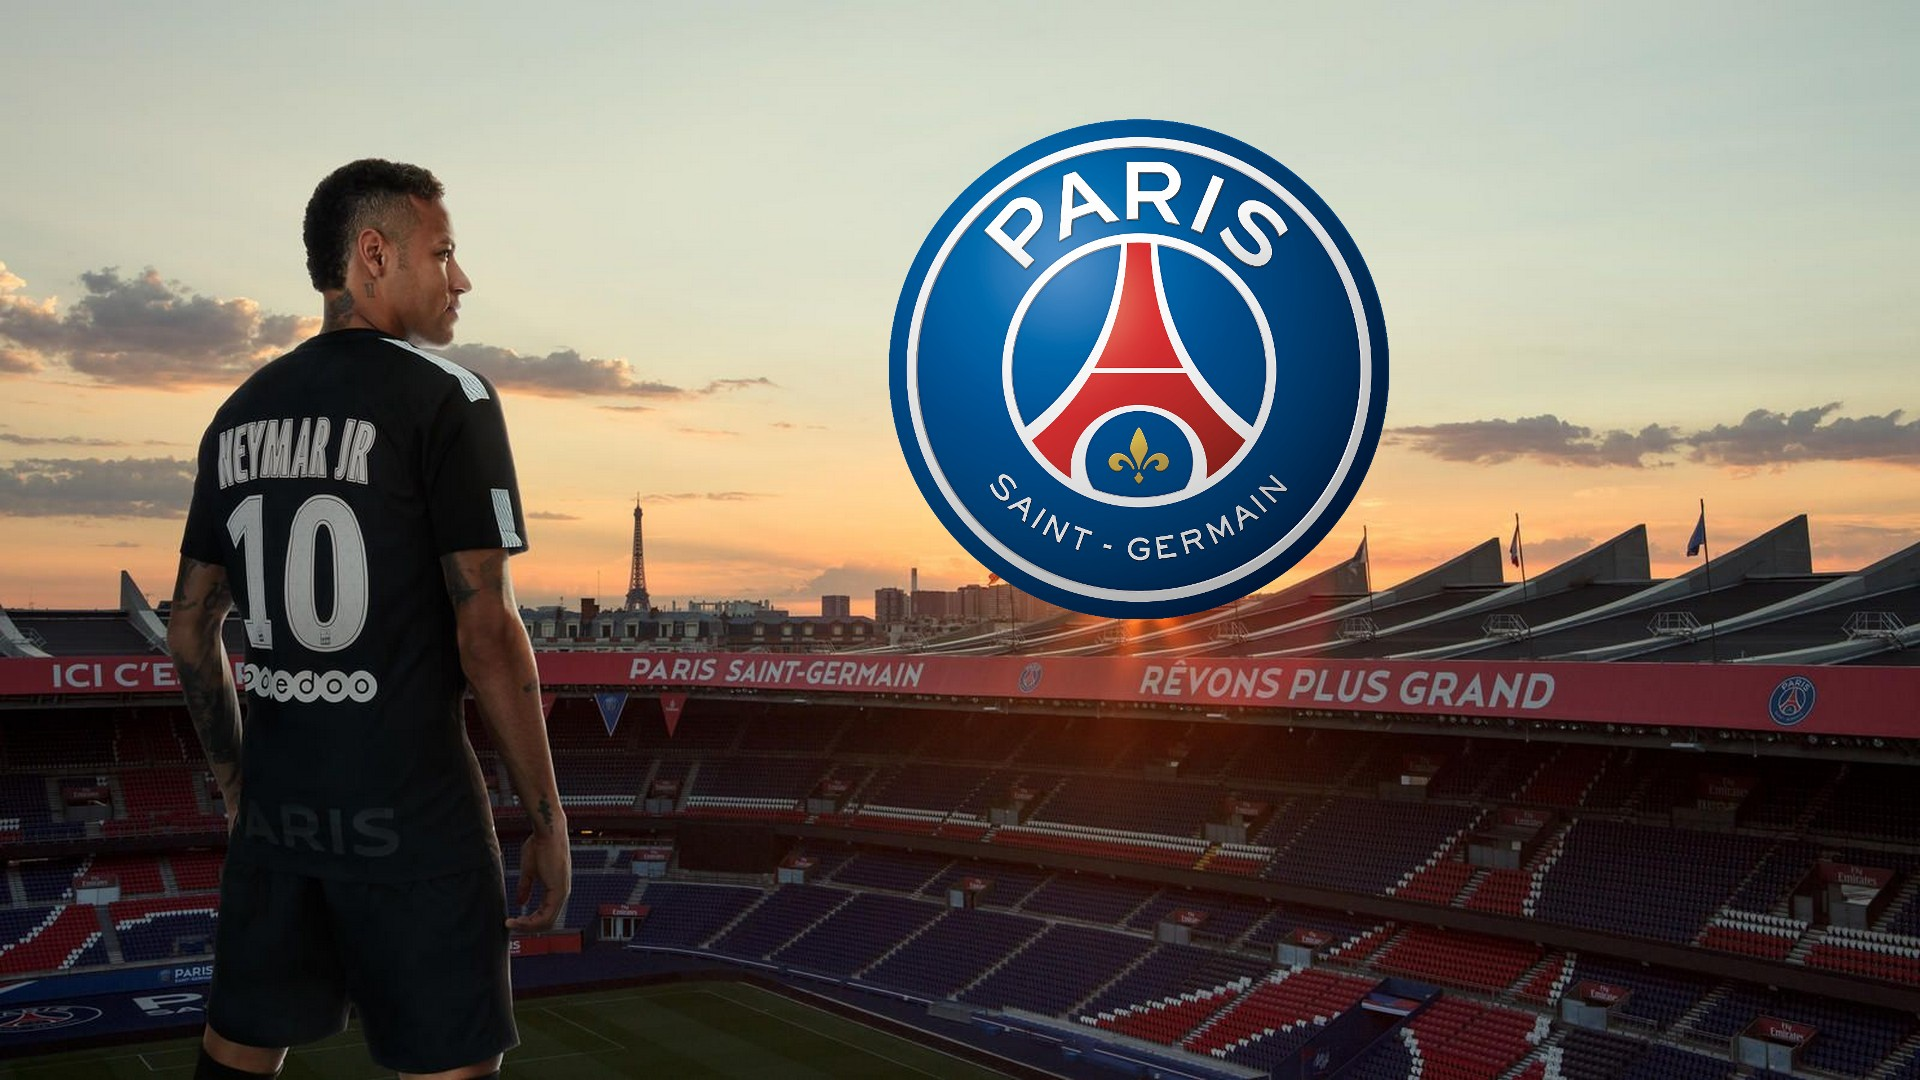 psg hd wallpaper posted by michelle walker